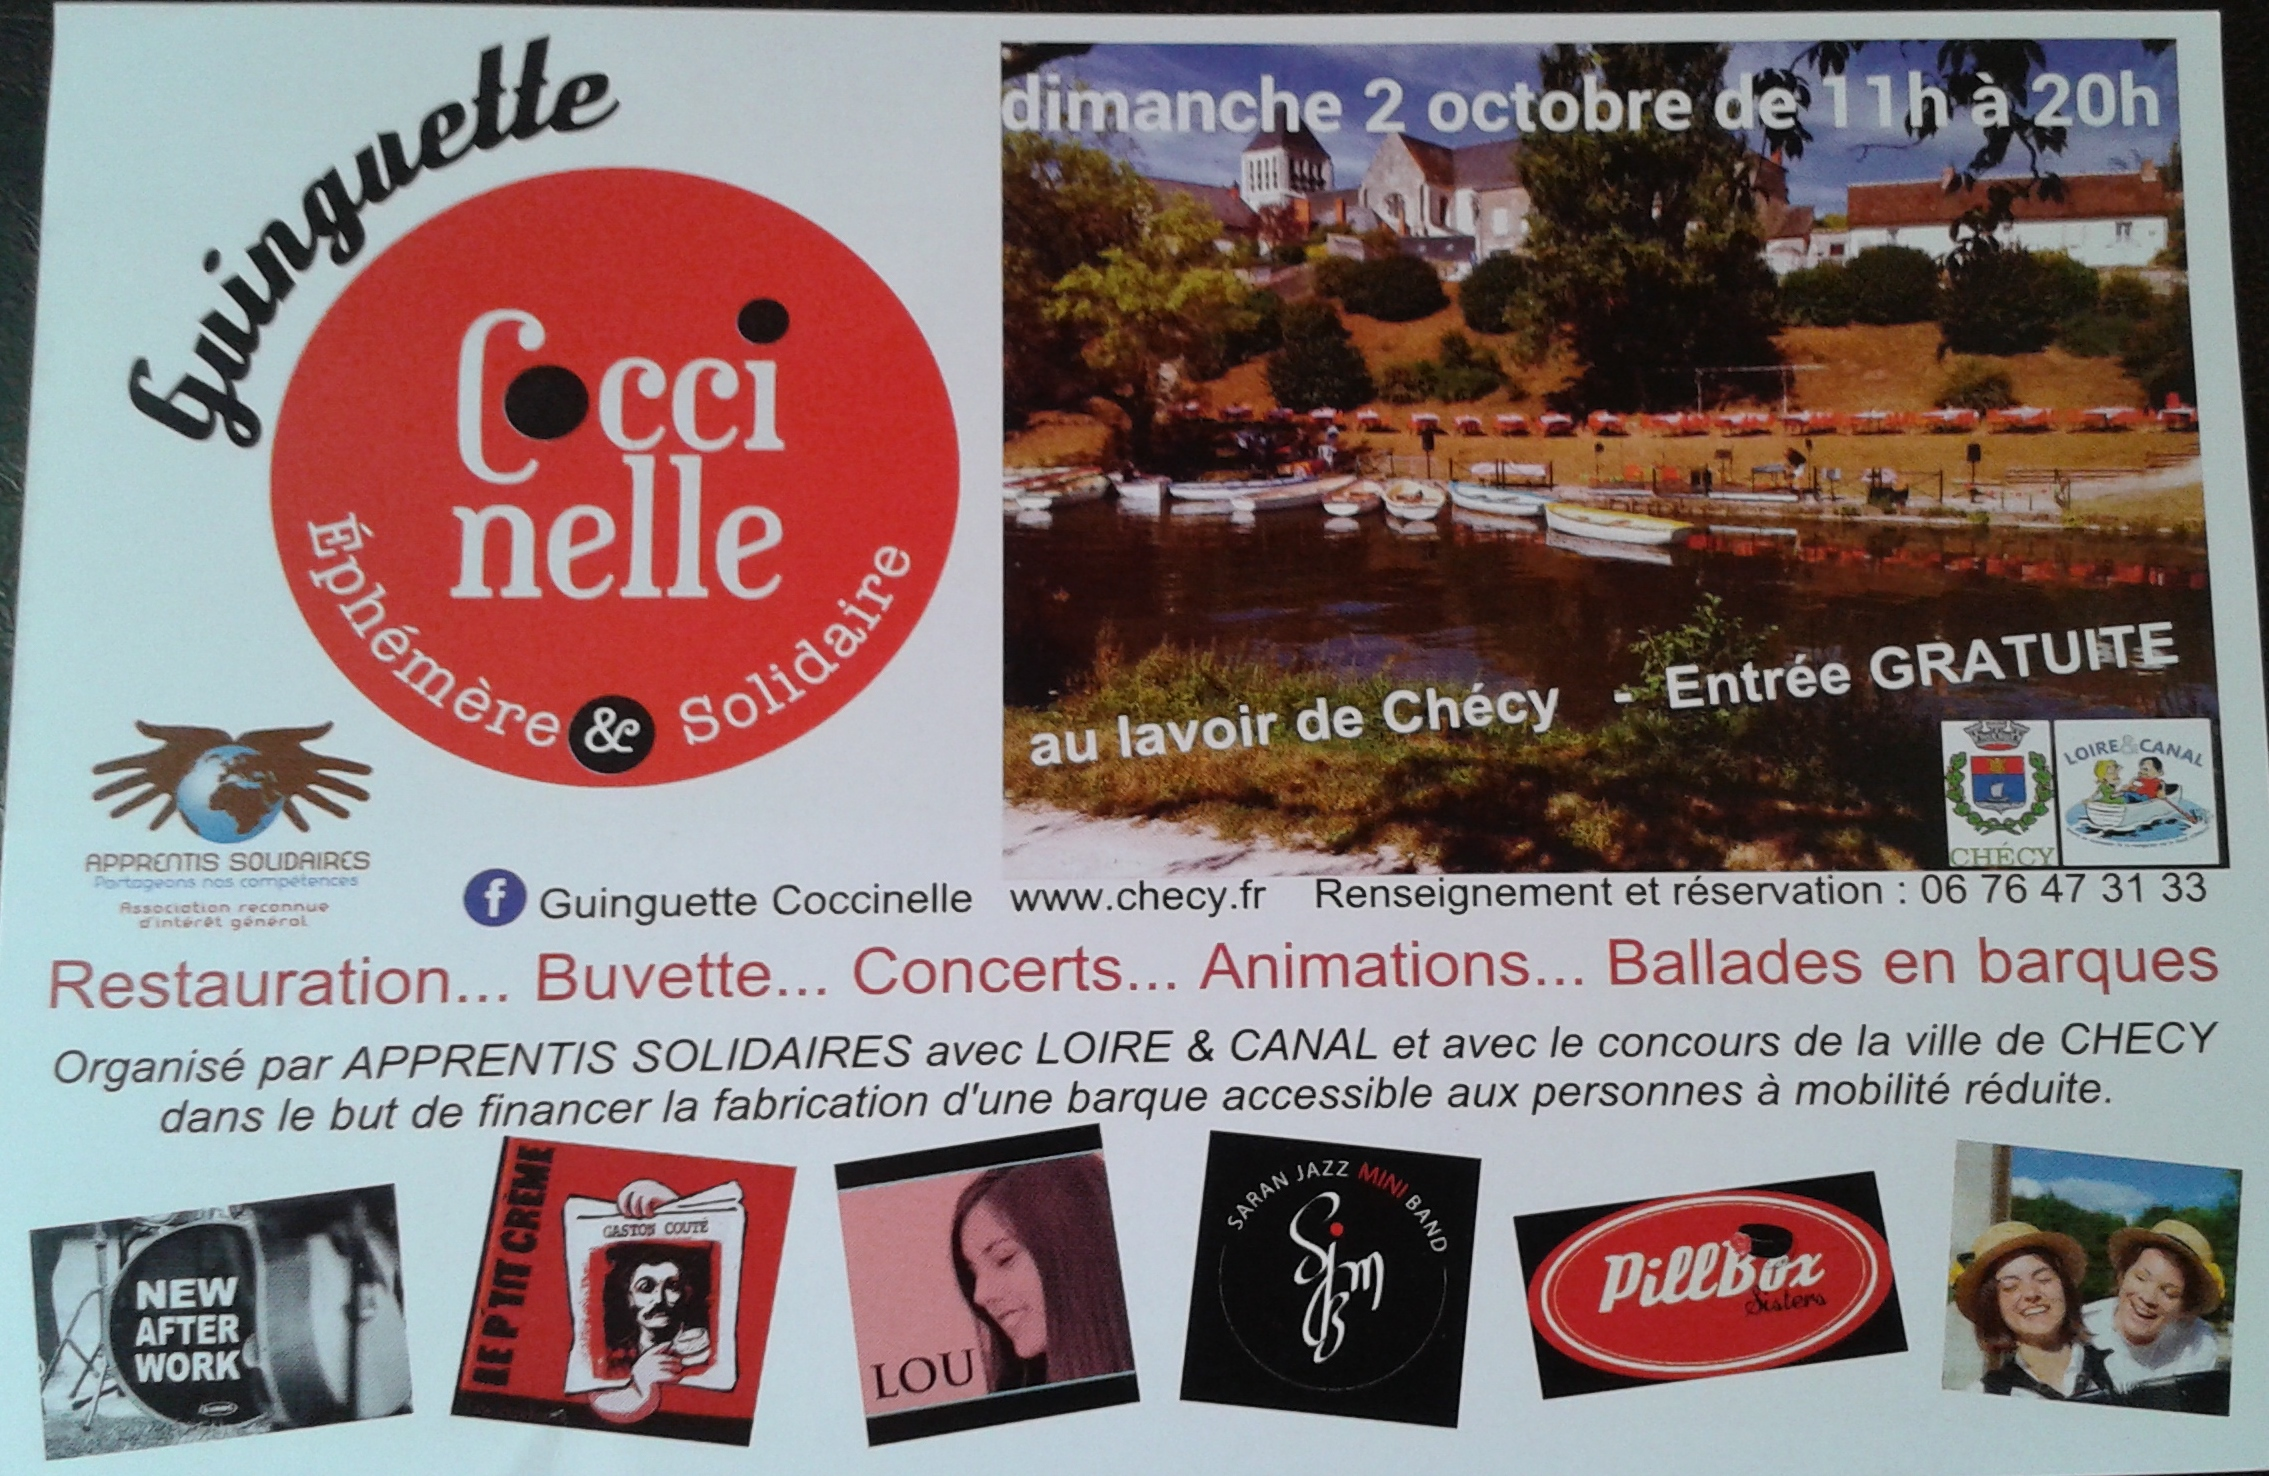 "2 Octobre 2016 Le P""tit Creme, New After Work à Checy ""le Lavoir"""